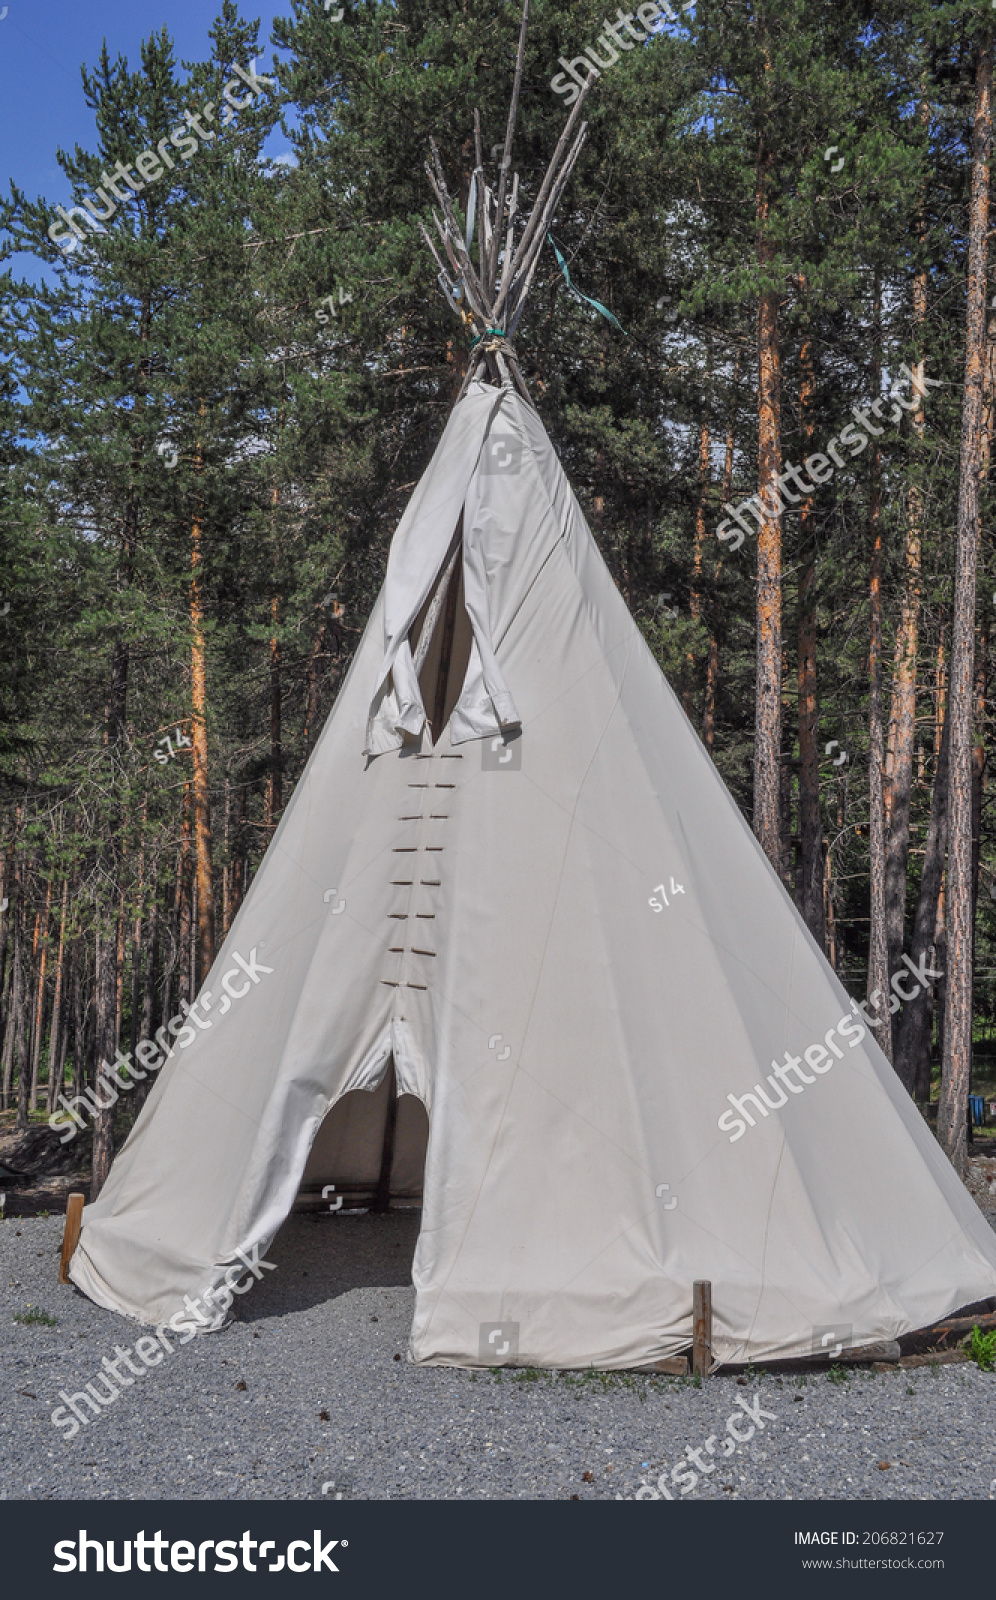 A fabric tent shelter for outdoor c&ing in a pine tree forest & Fabric Tent Shelter Outdoor Camping Pine Stock Photo 206821627 ...